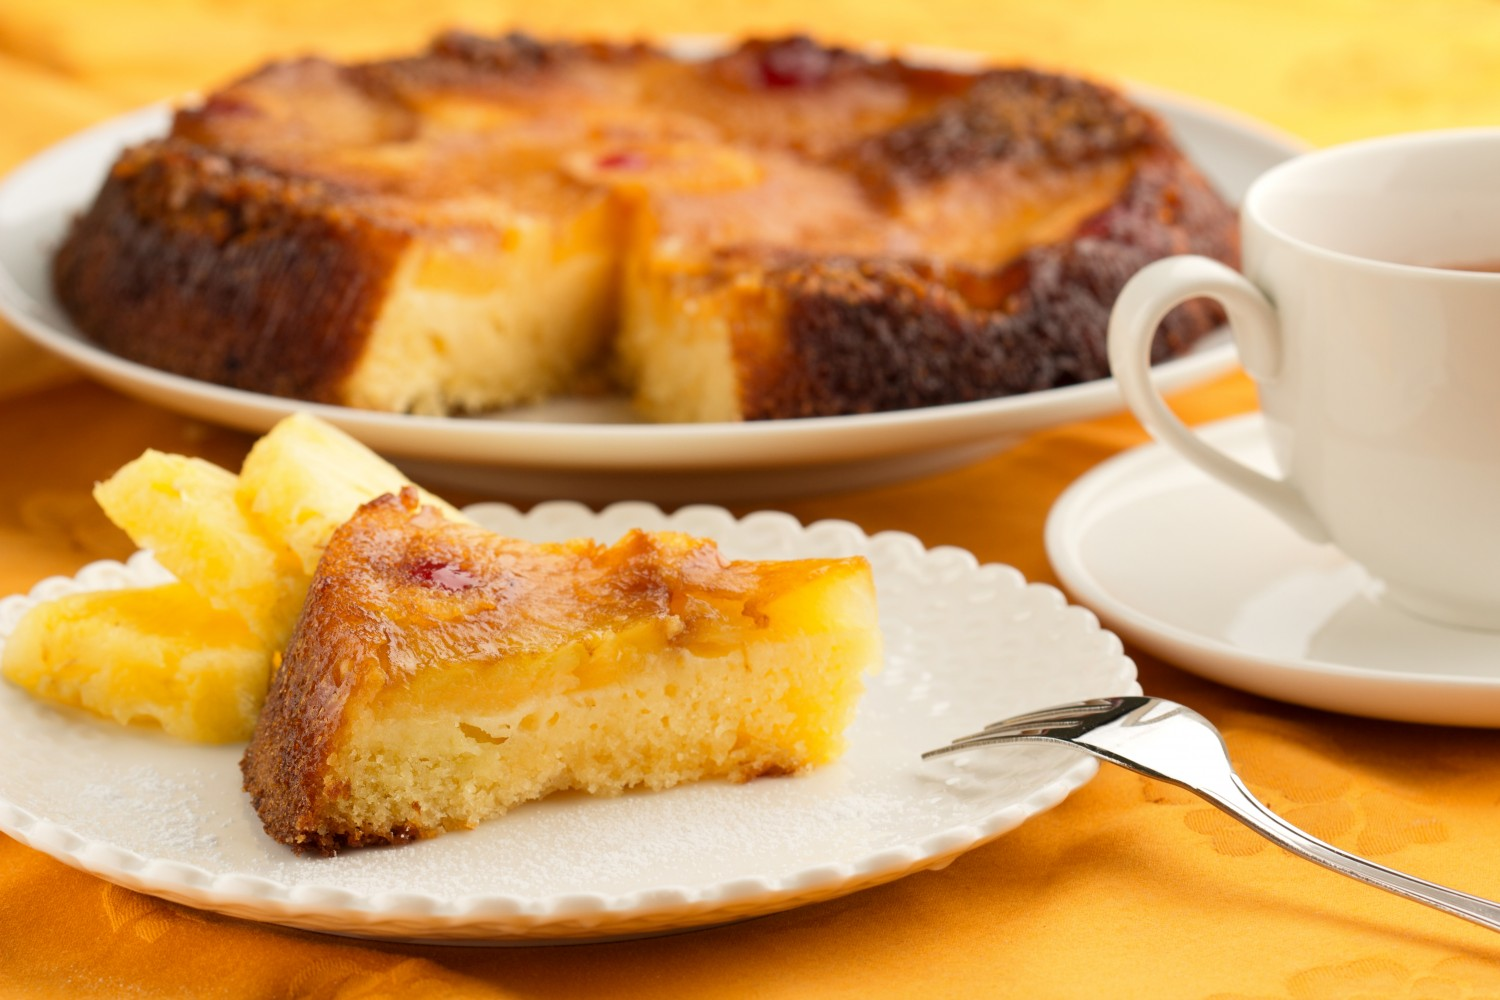 Image for Pineapple Upside Down Cake